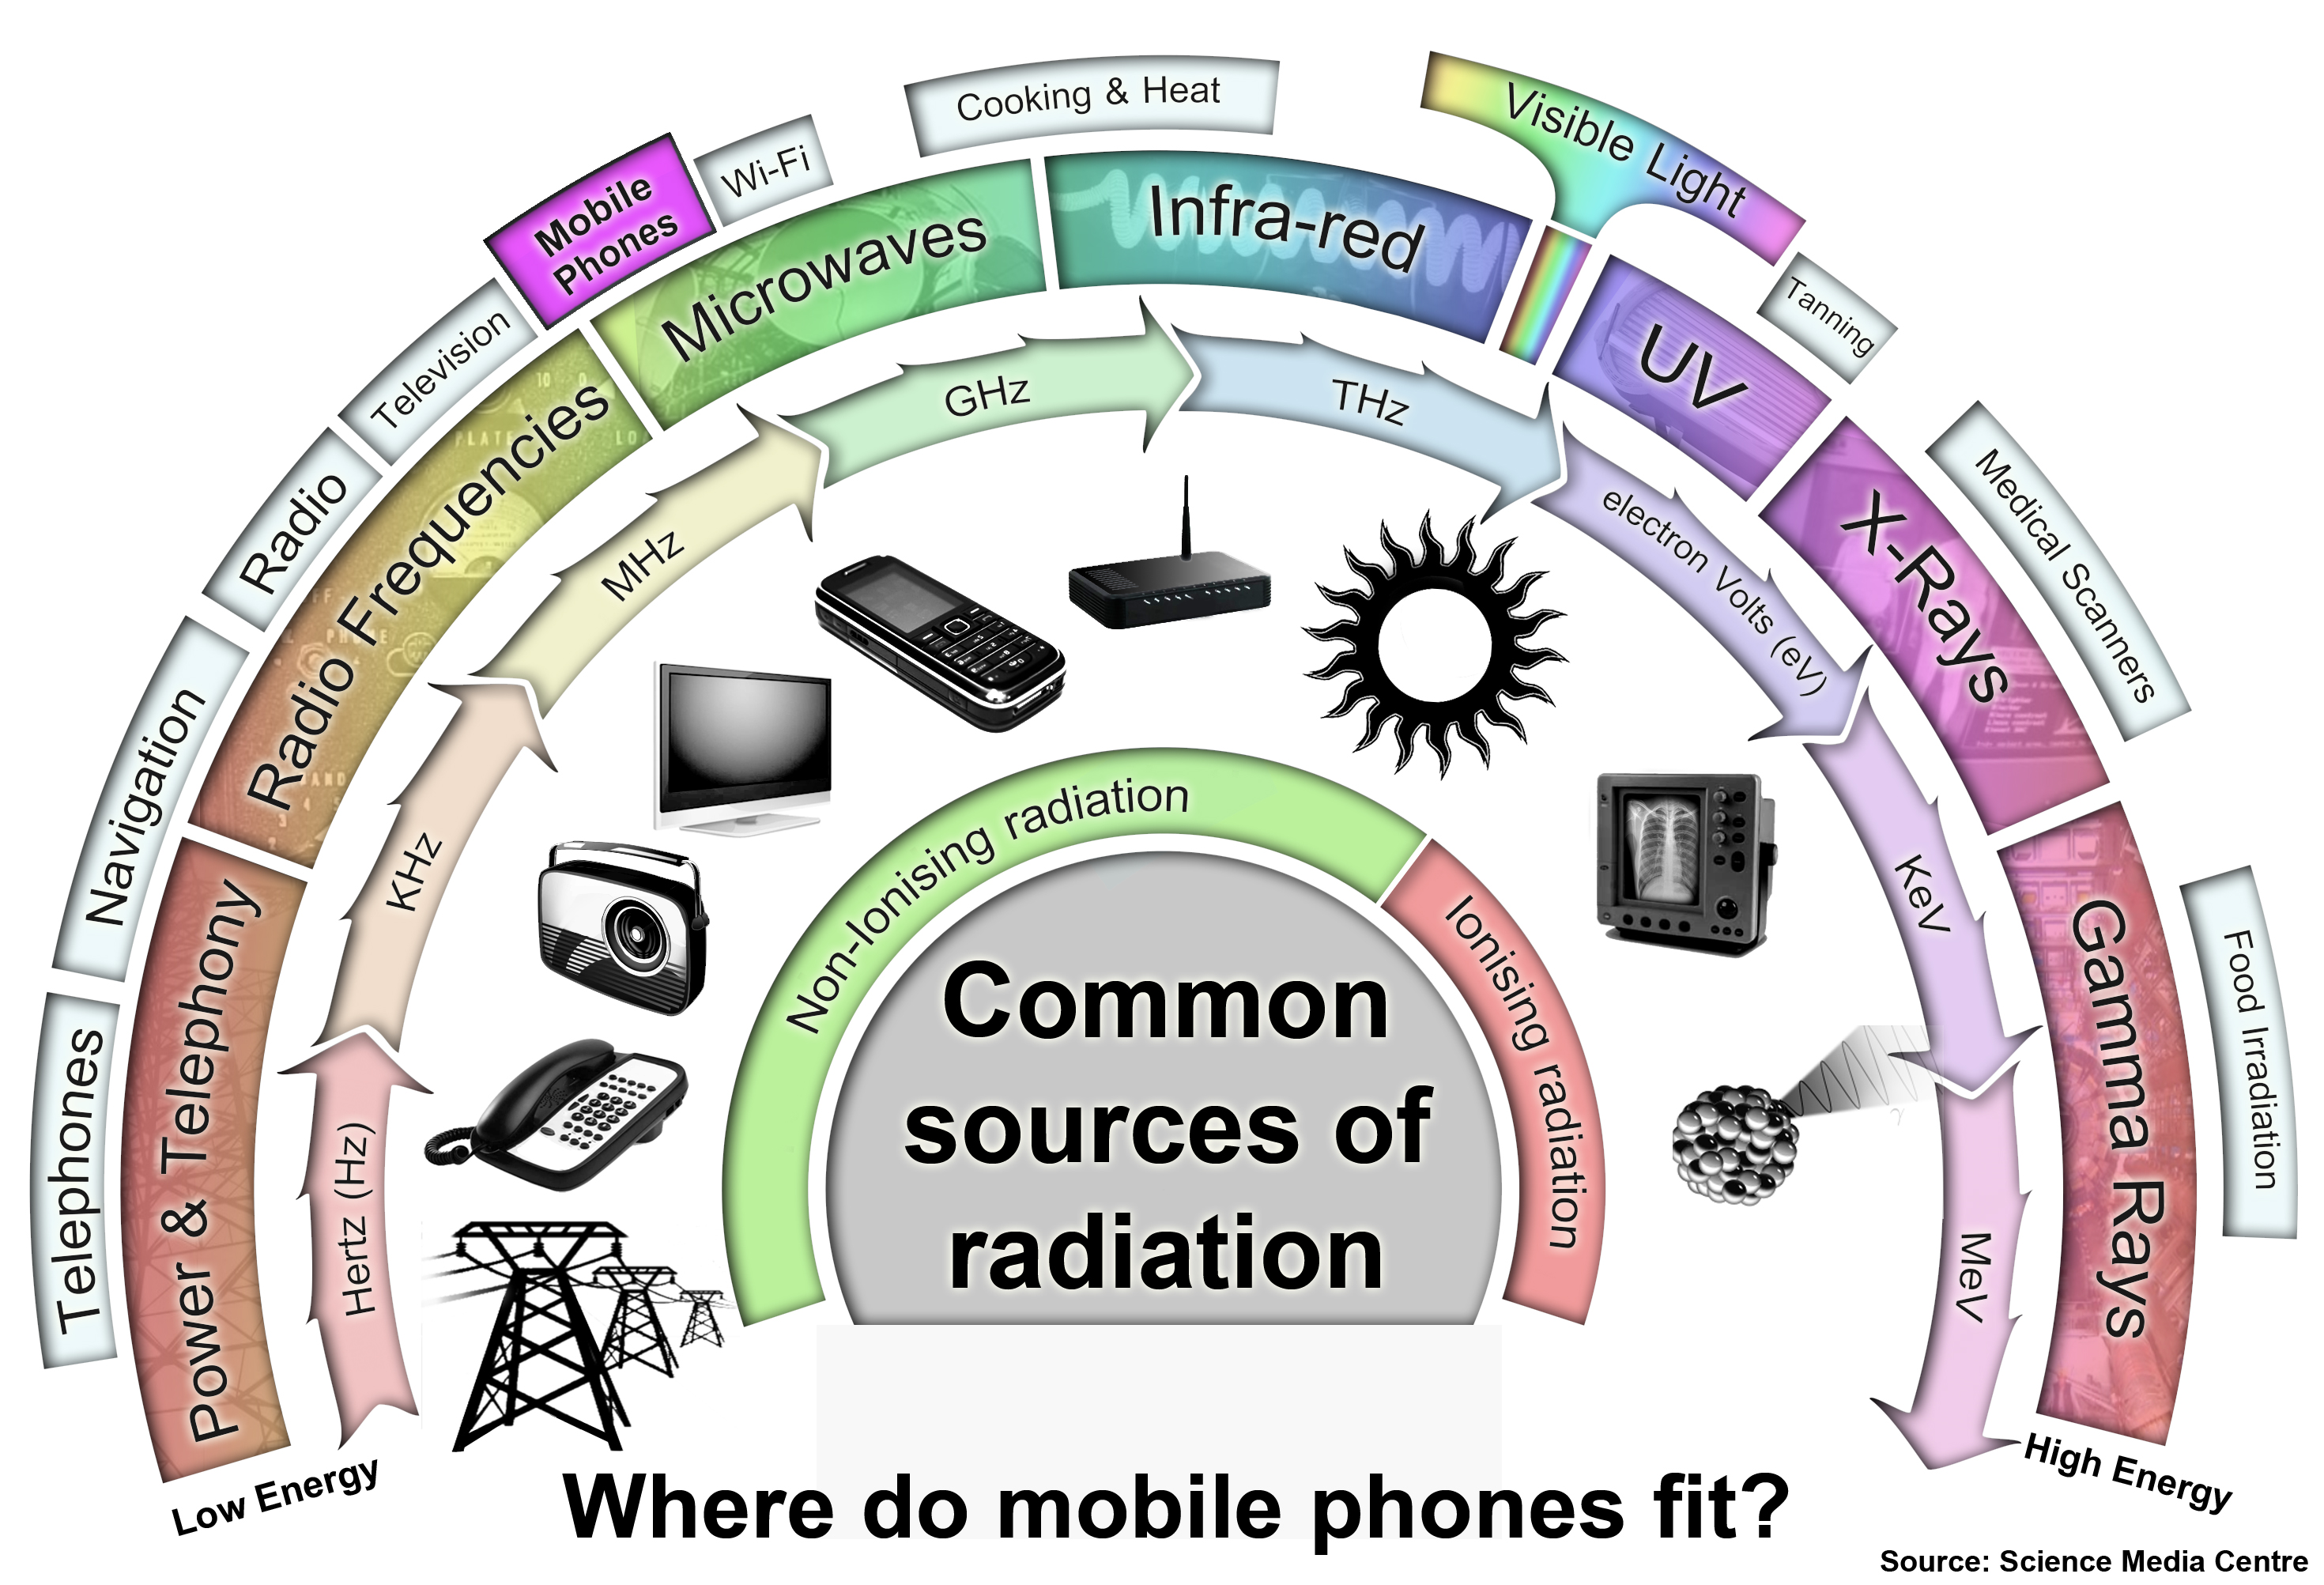 Reducing Exposure to EMF Radiation from Wirless Devices, Radiowaves